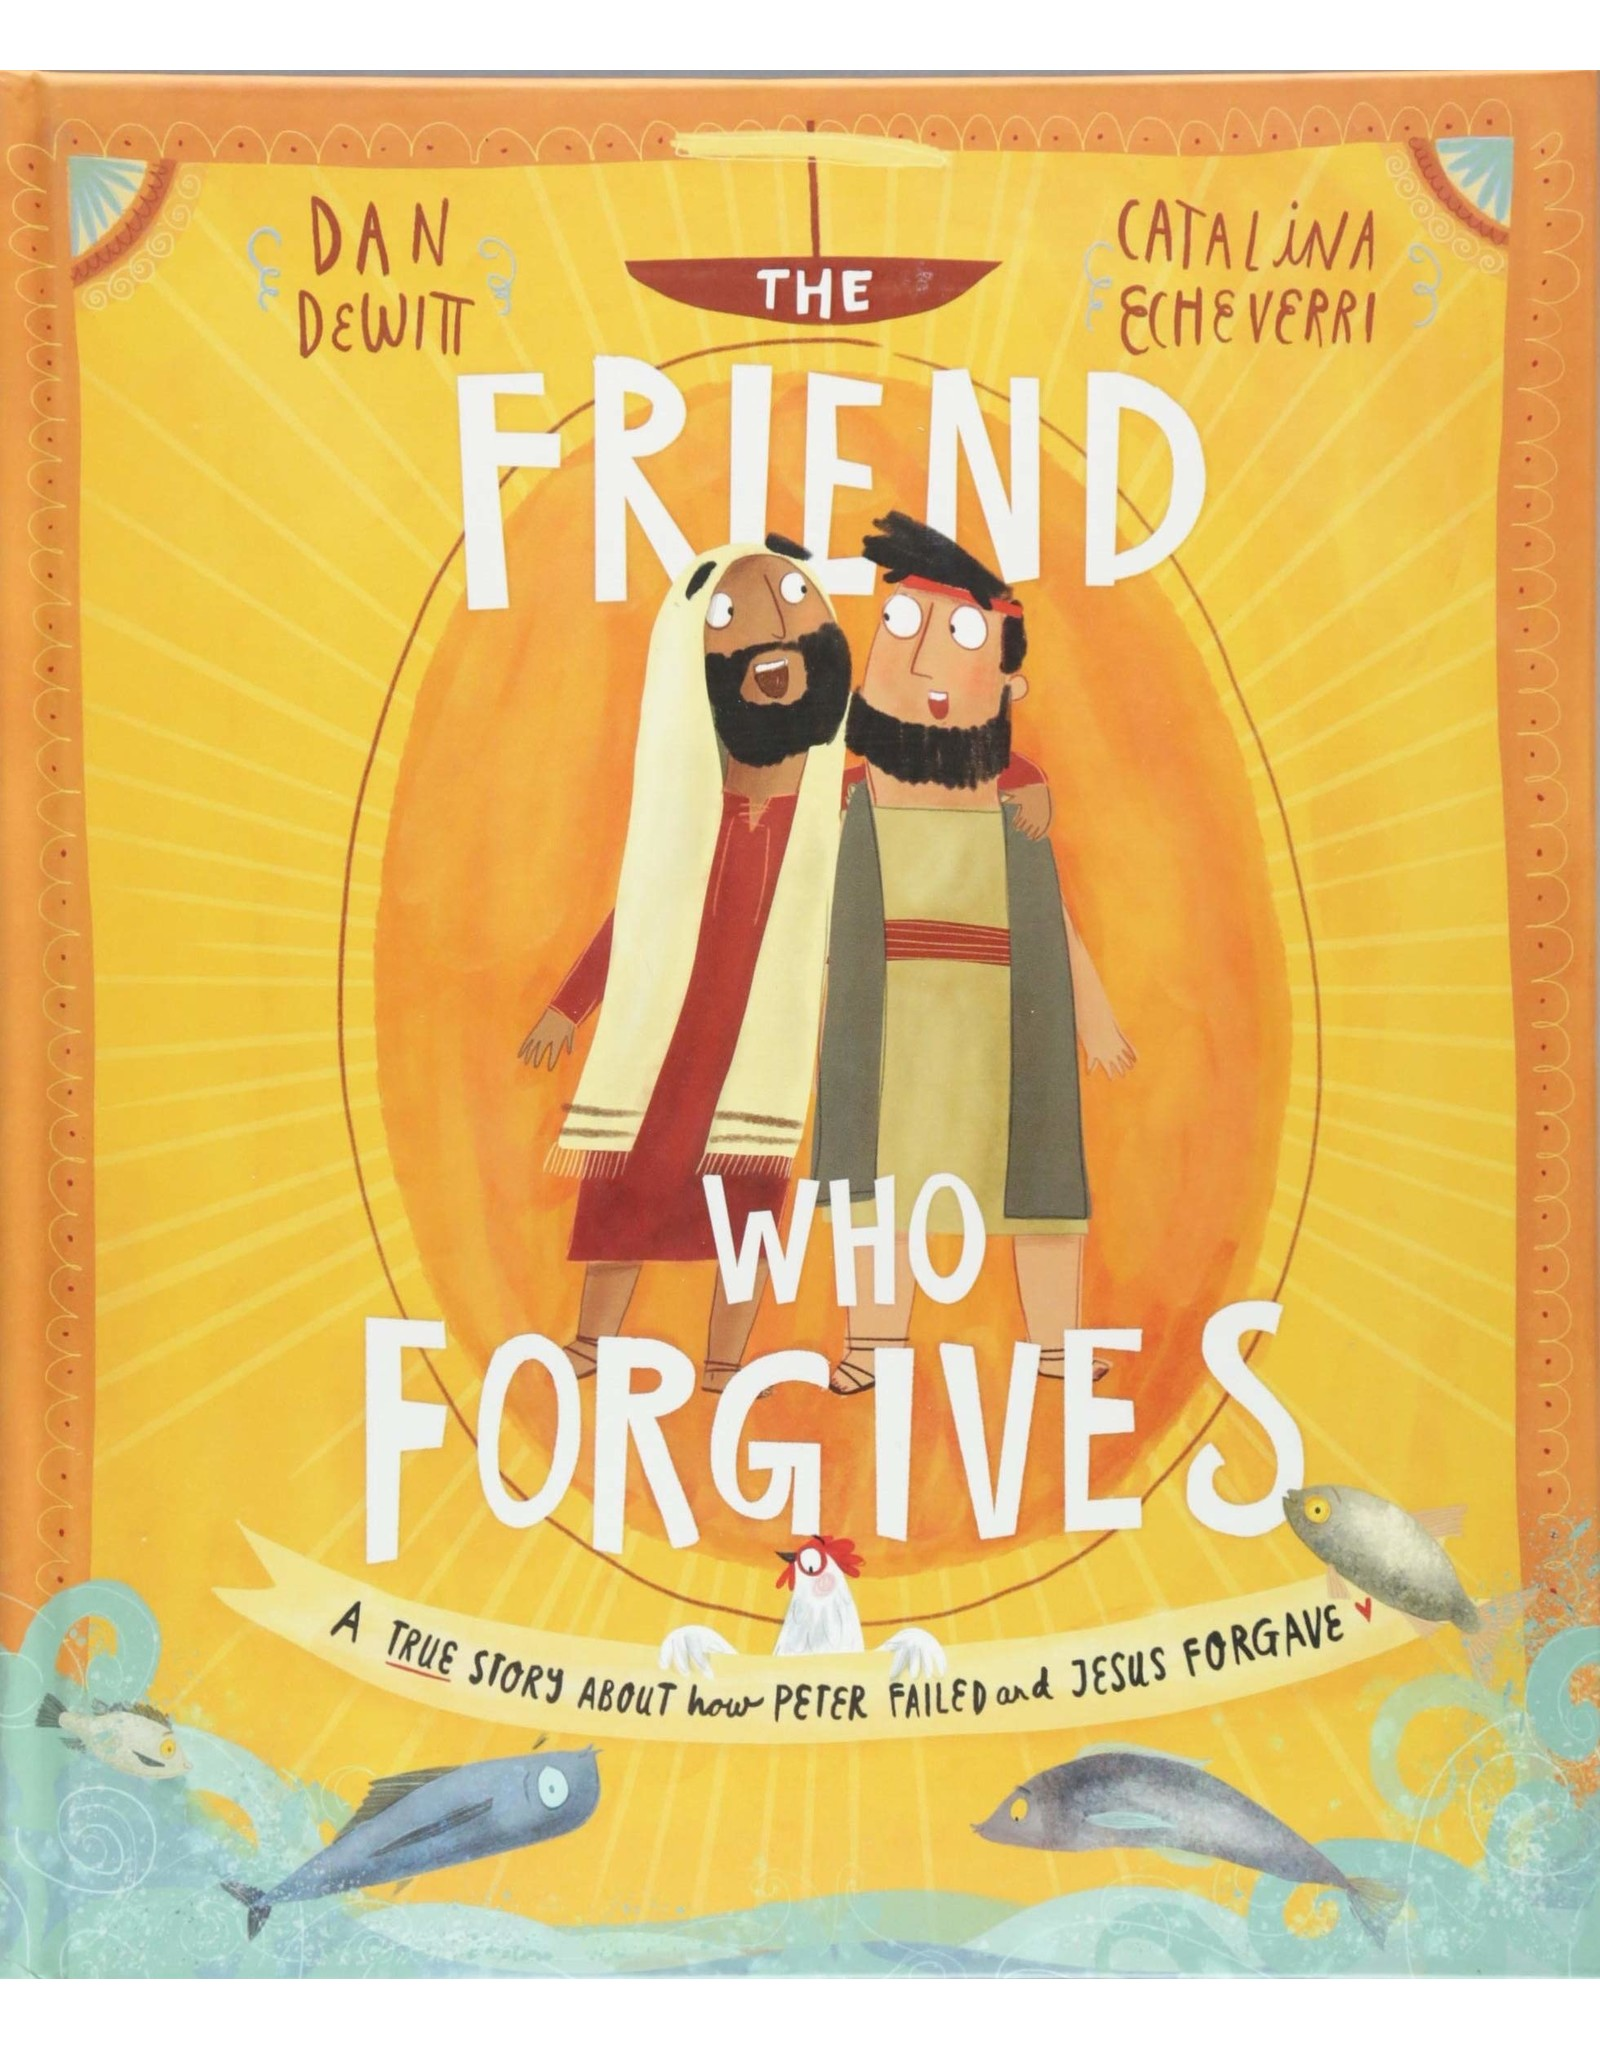 The Good Book Company The Friend Who Forgives: A True Story About How Peter Failed and Jesus Forgave